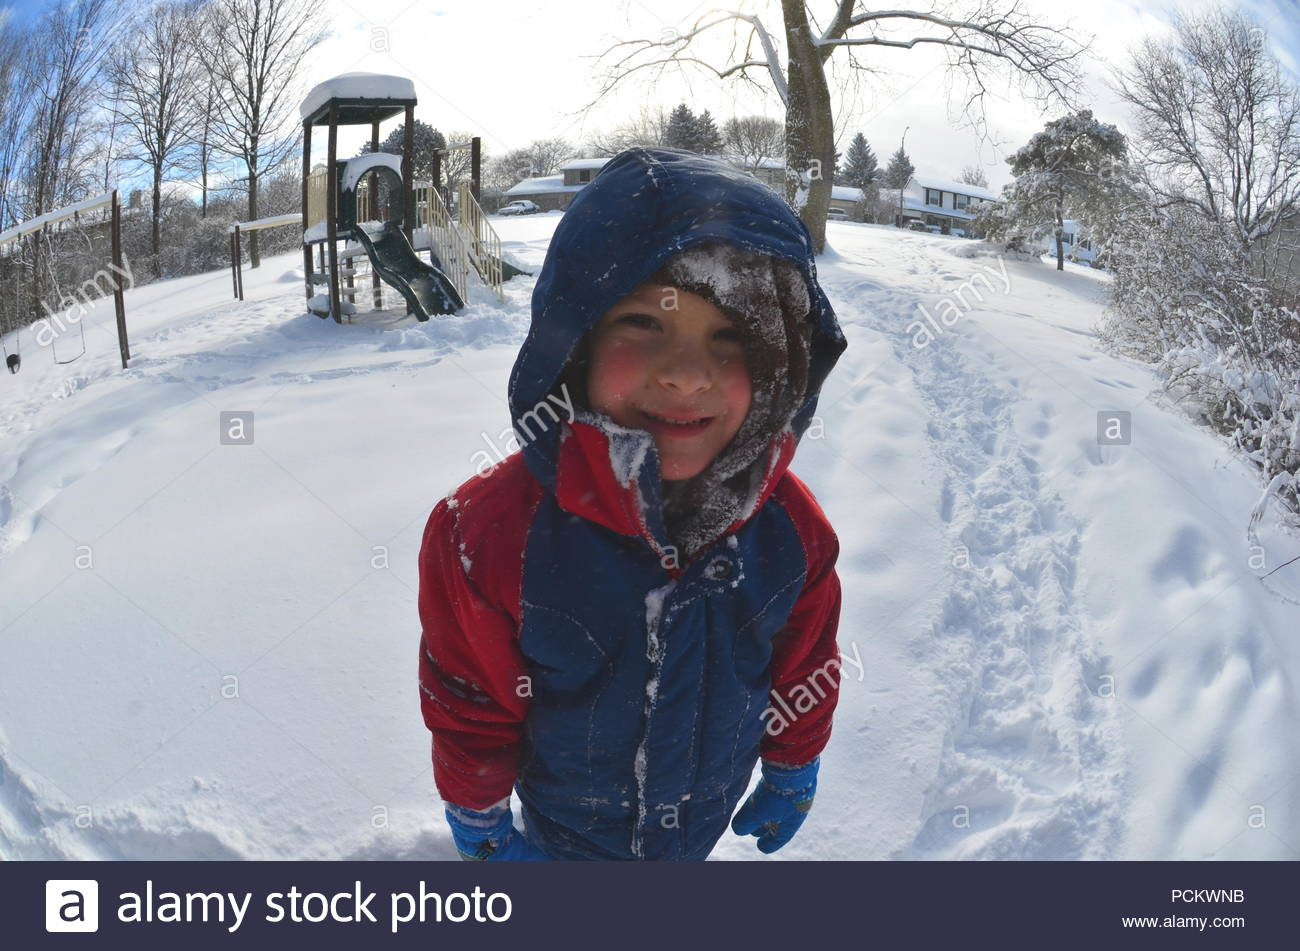 A happy Caucasian boy having fun and playing in the snow during frosty Canadian winter day - Stock Image